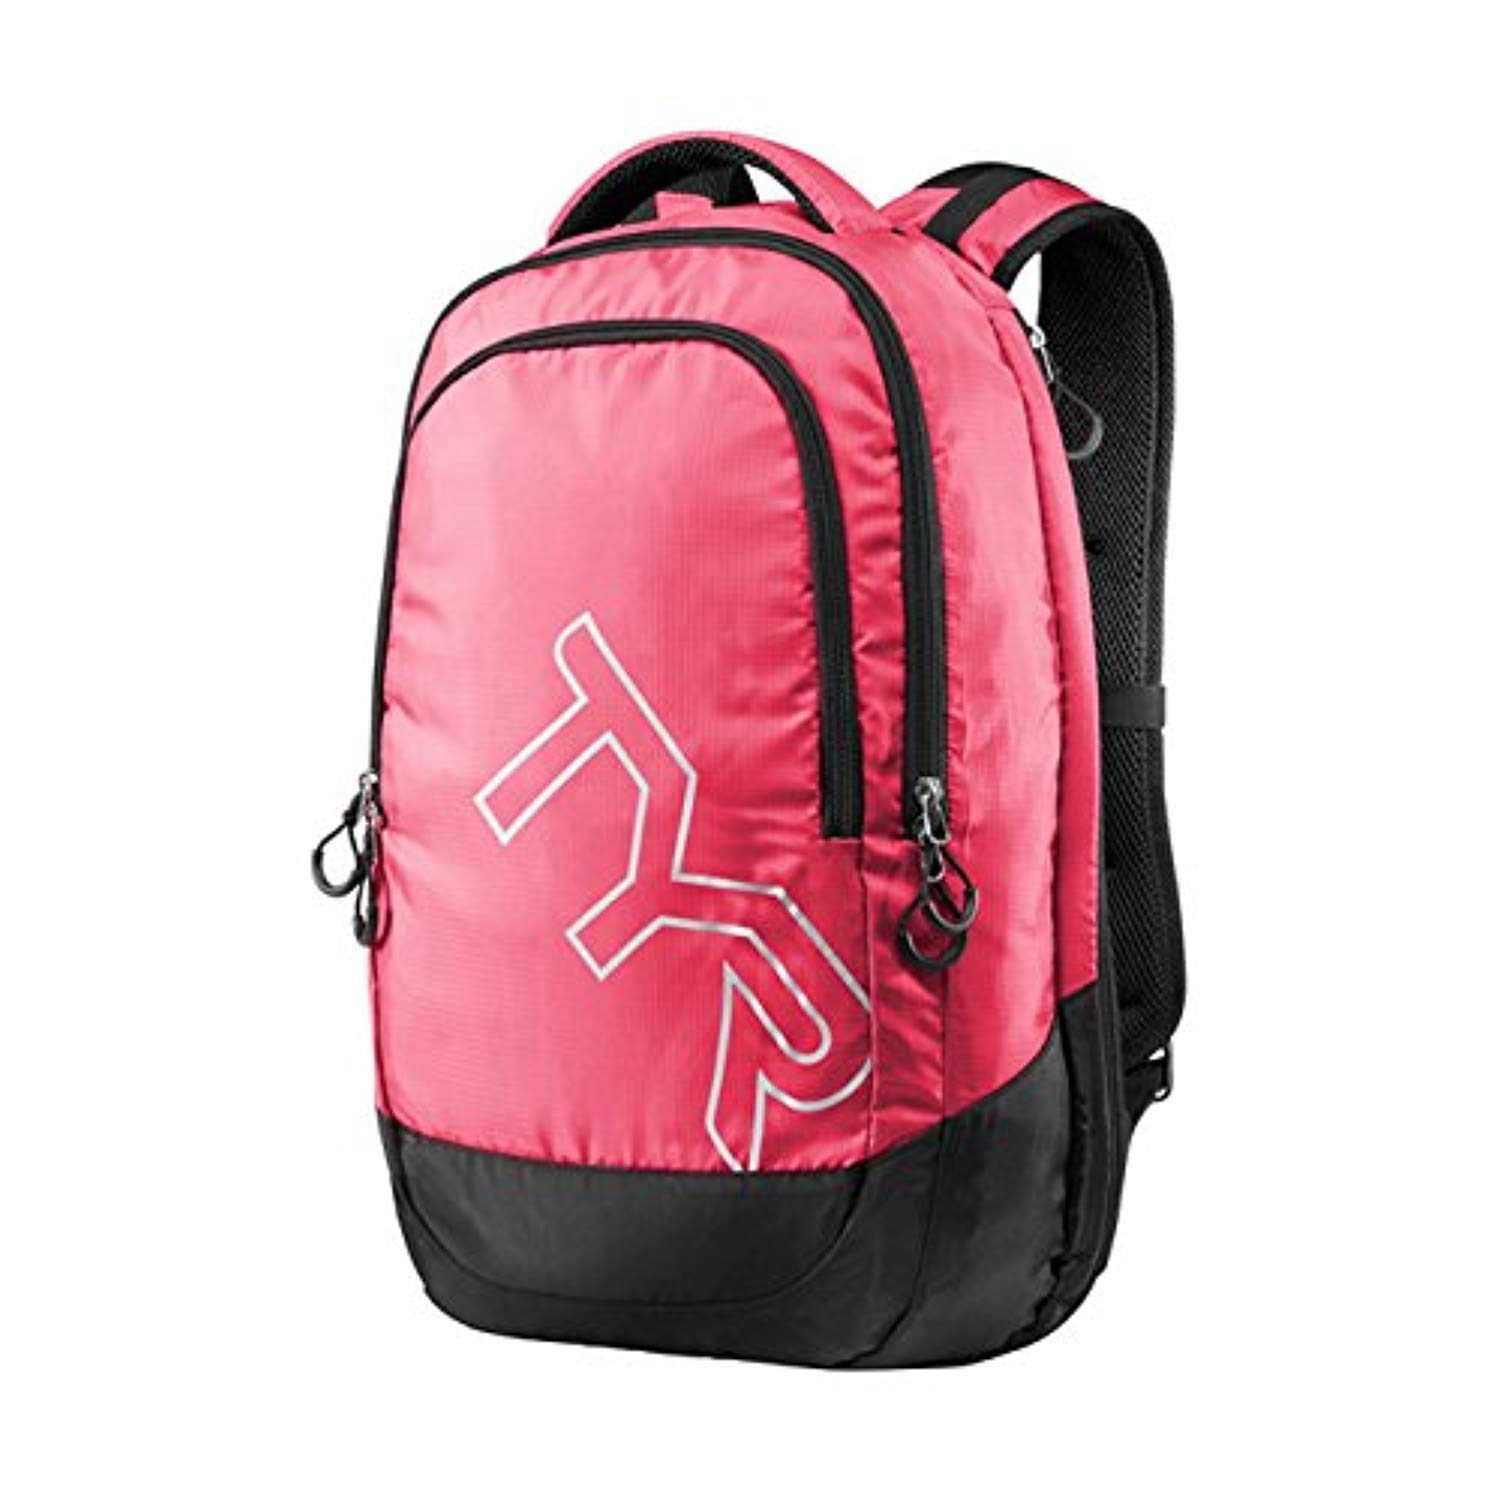 Swim Bundle: TYR Victory Backpack Pink/Black All & Swimming Earplugs by Competition Swimwear